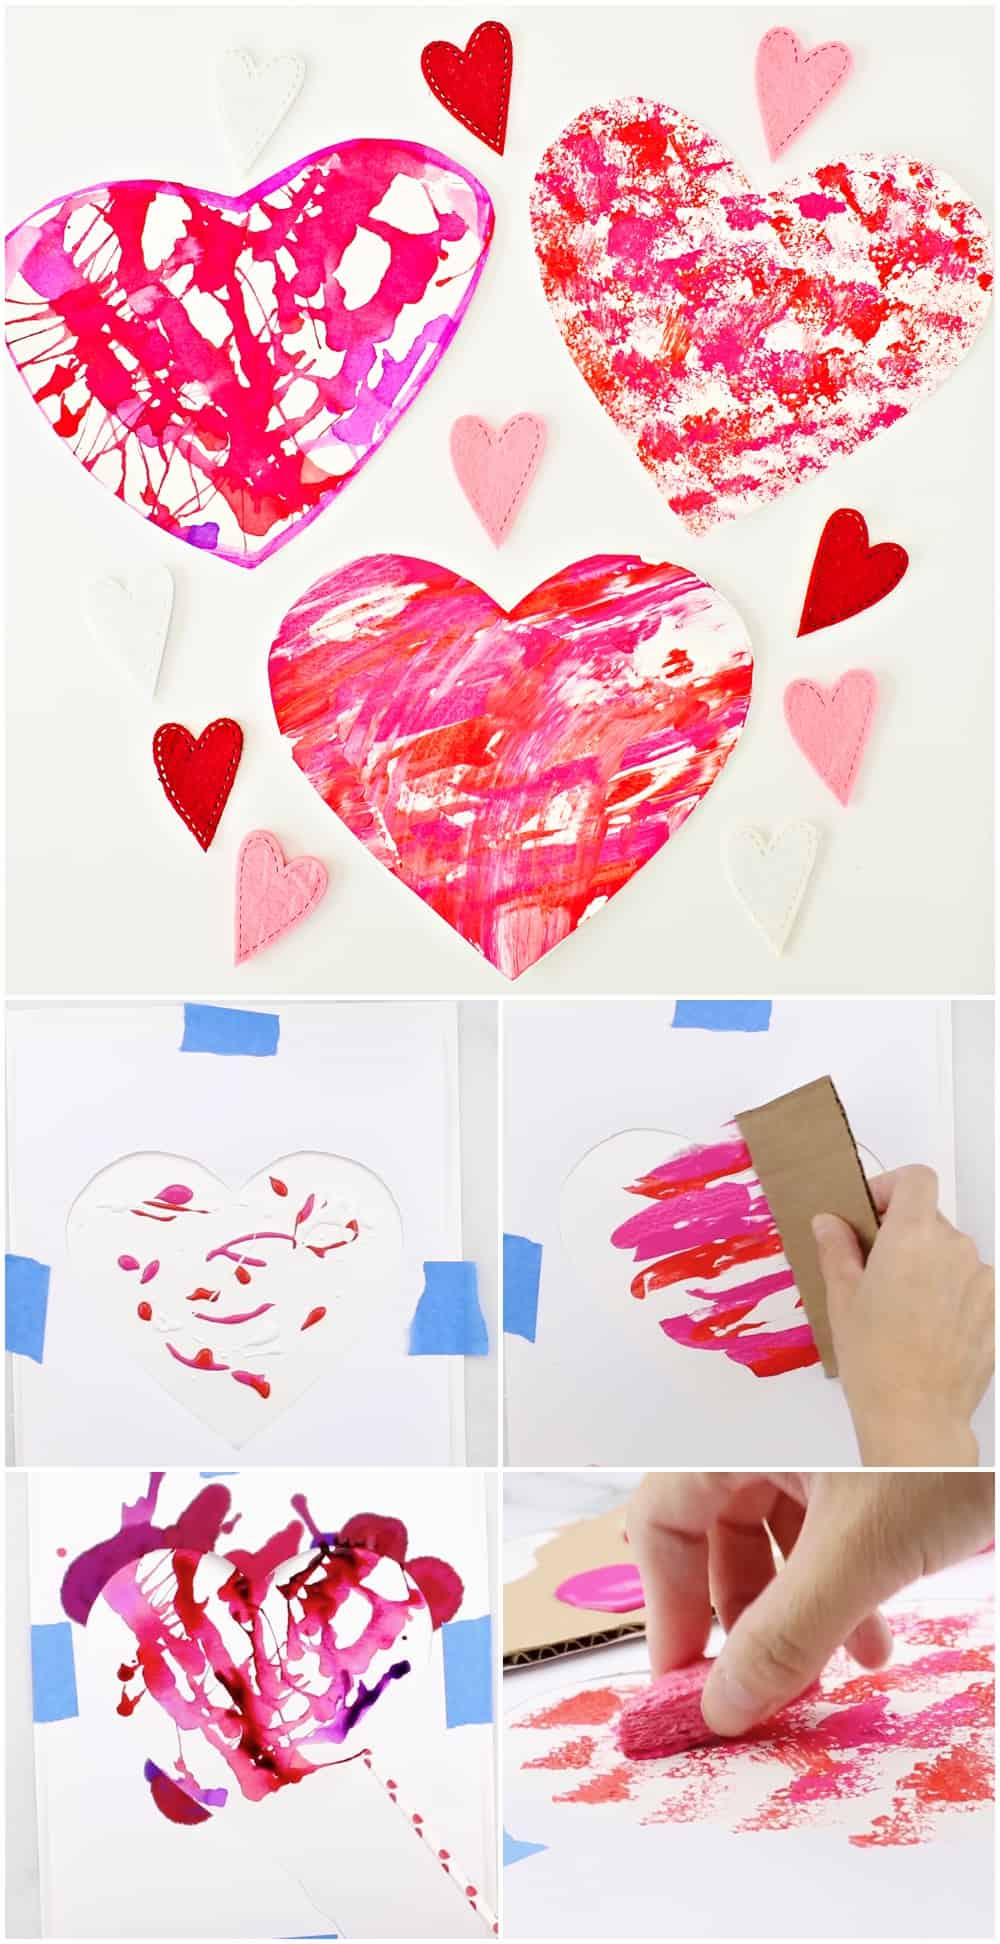 VALENTINE ART AND CRAFT PROJECT FOR KIDS